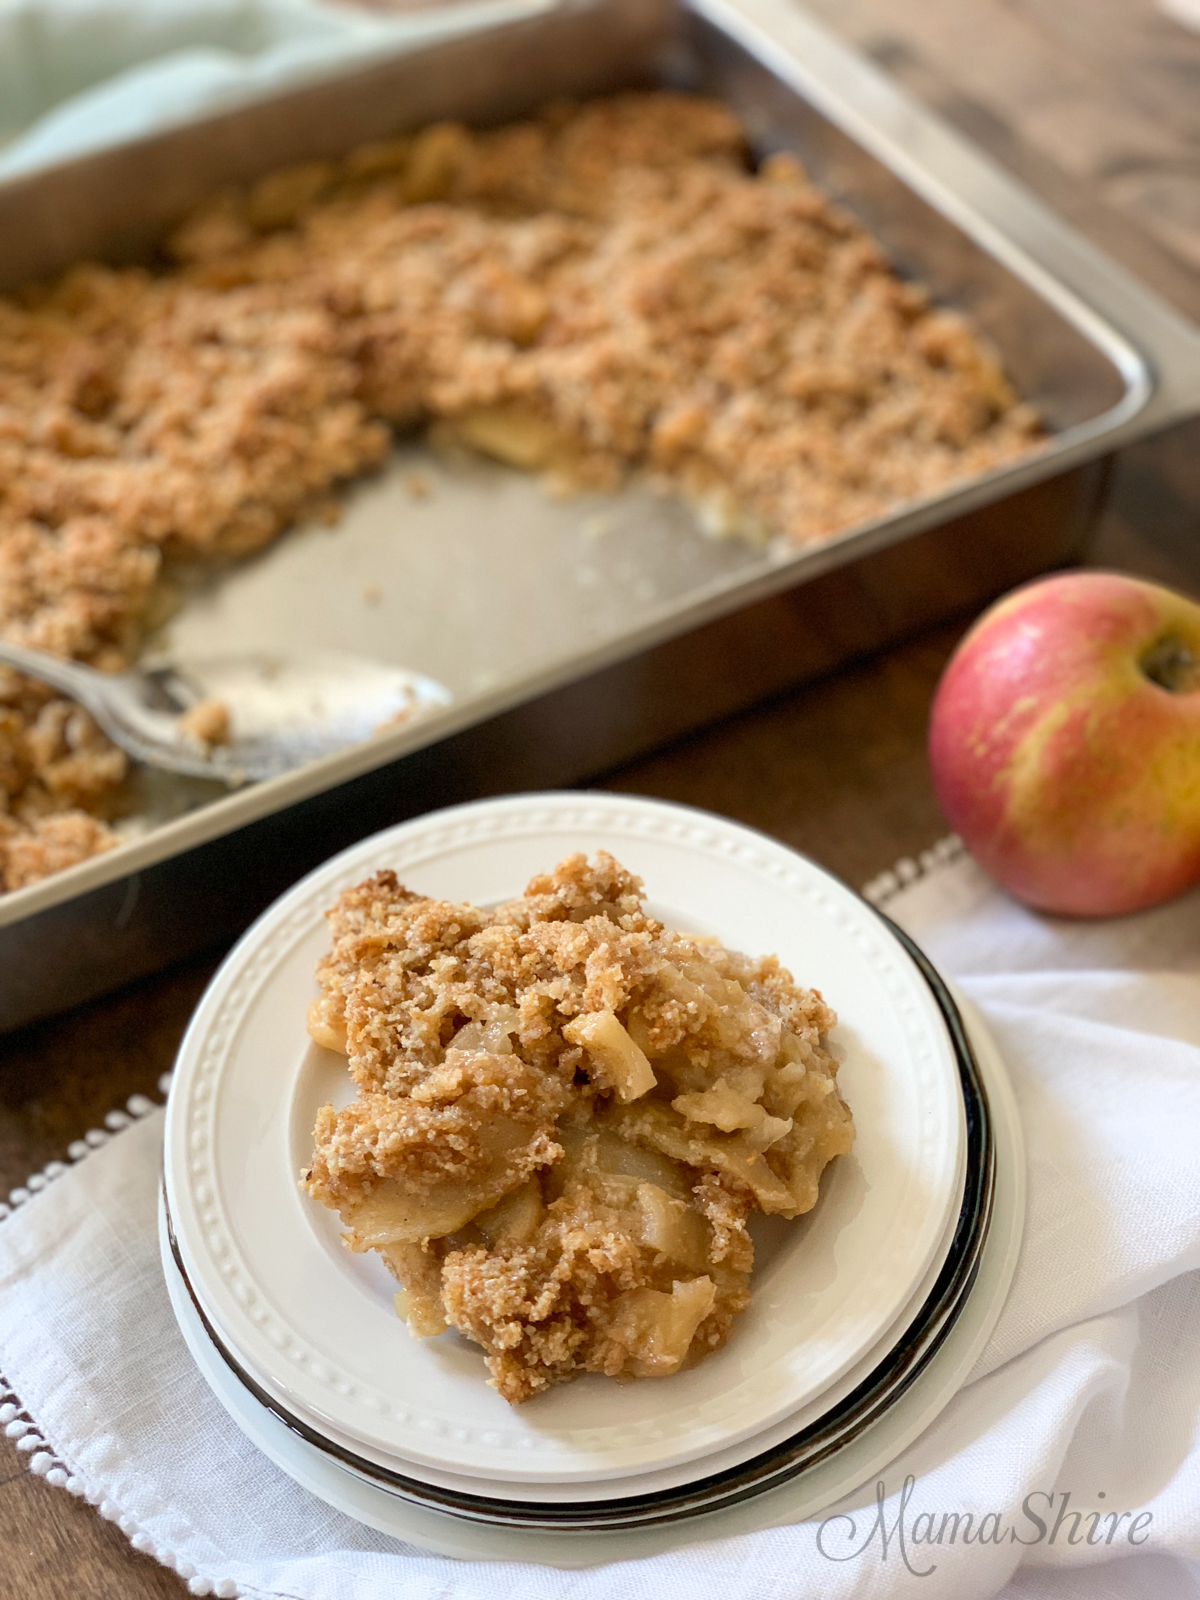 Grain-free apple crisp on a dessert plate with the whole pan and an apple.